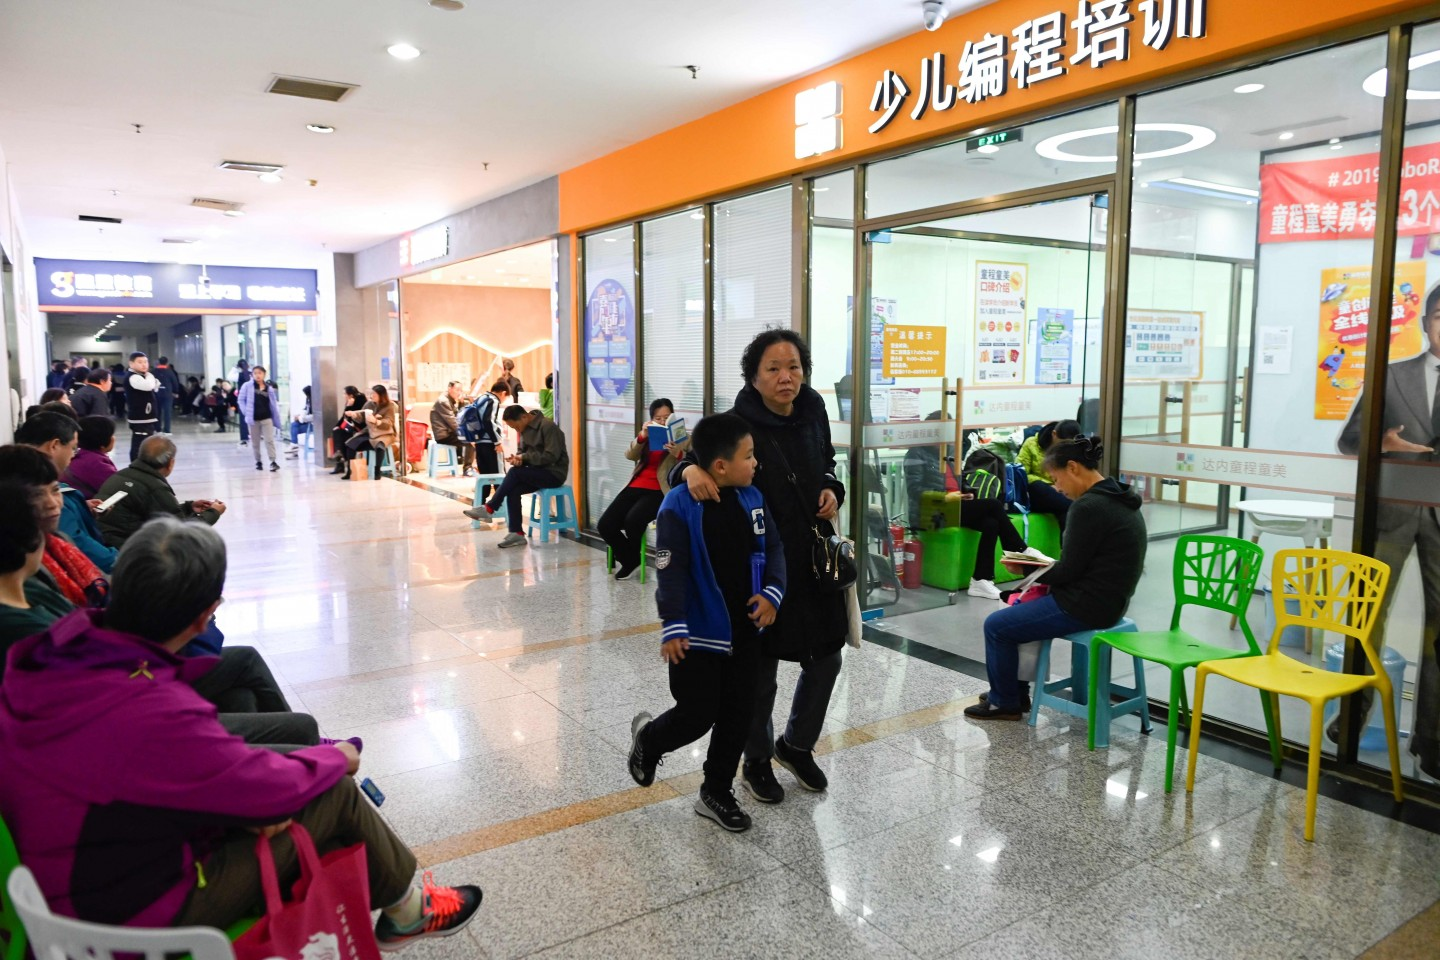 China has been making huge investments in robotics and AI, with the government issuing in 2017 an AI development plan which suggested programming courses be taught in both primary and secondary schools. This picture taken on November 8, 2019 shows parents and guardians waiting outside a children's computer coding training centre in Beijing.  (Wang Zhao/AFP)